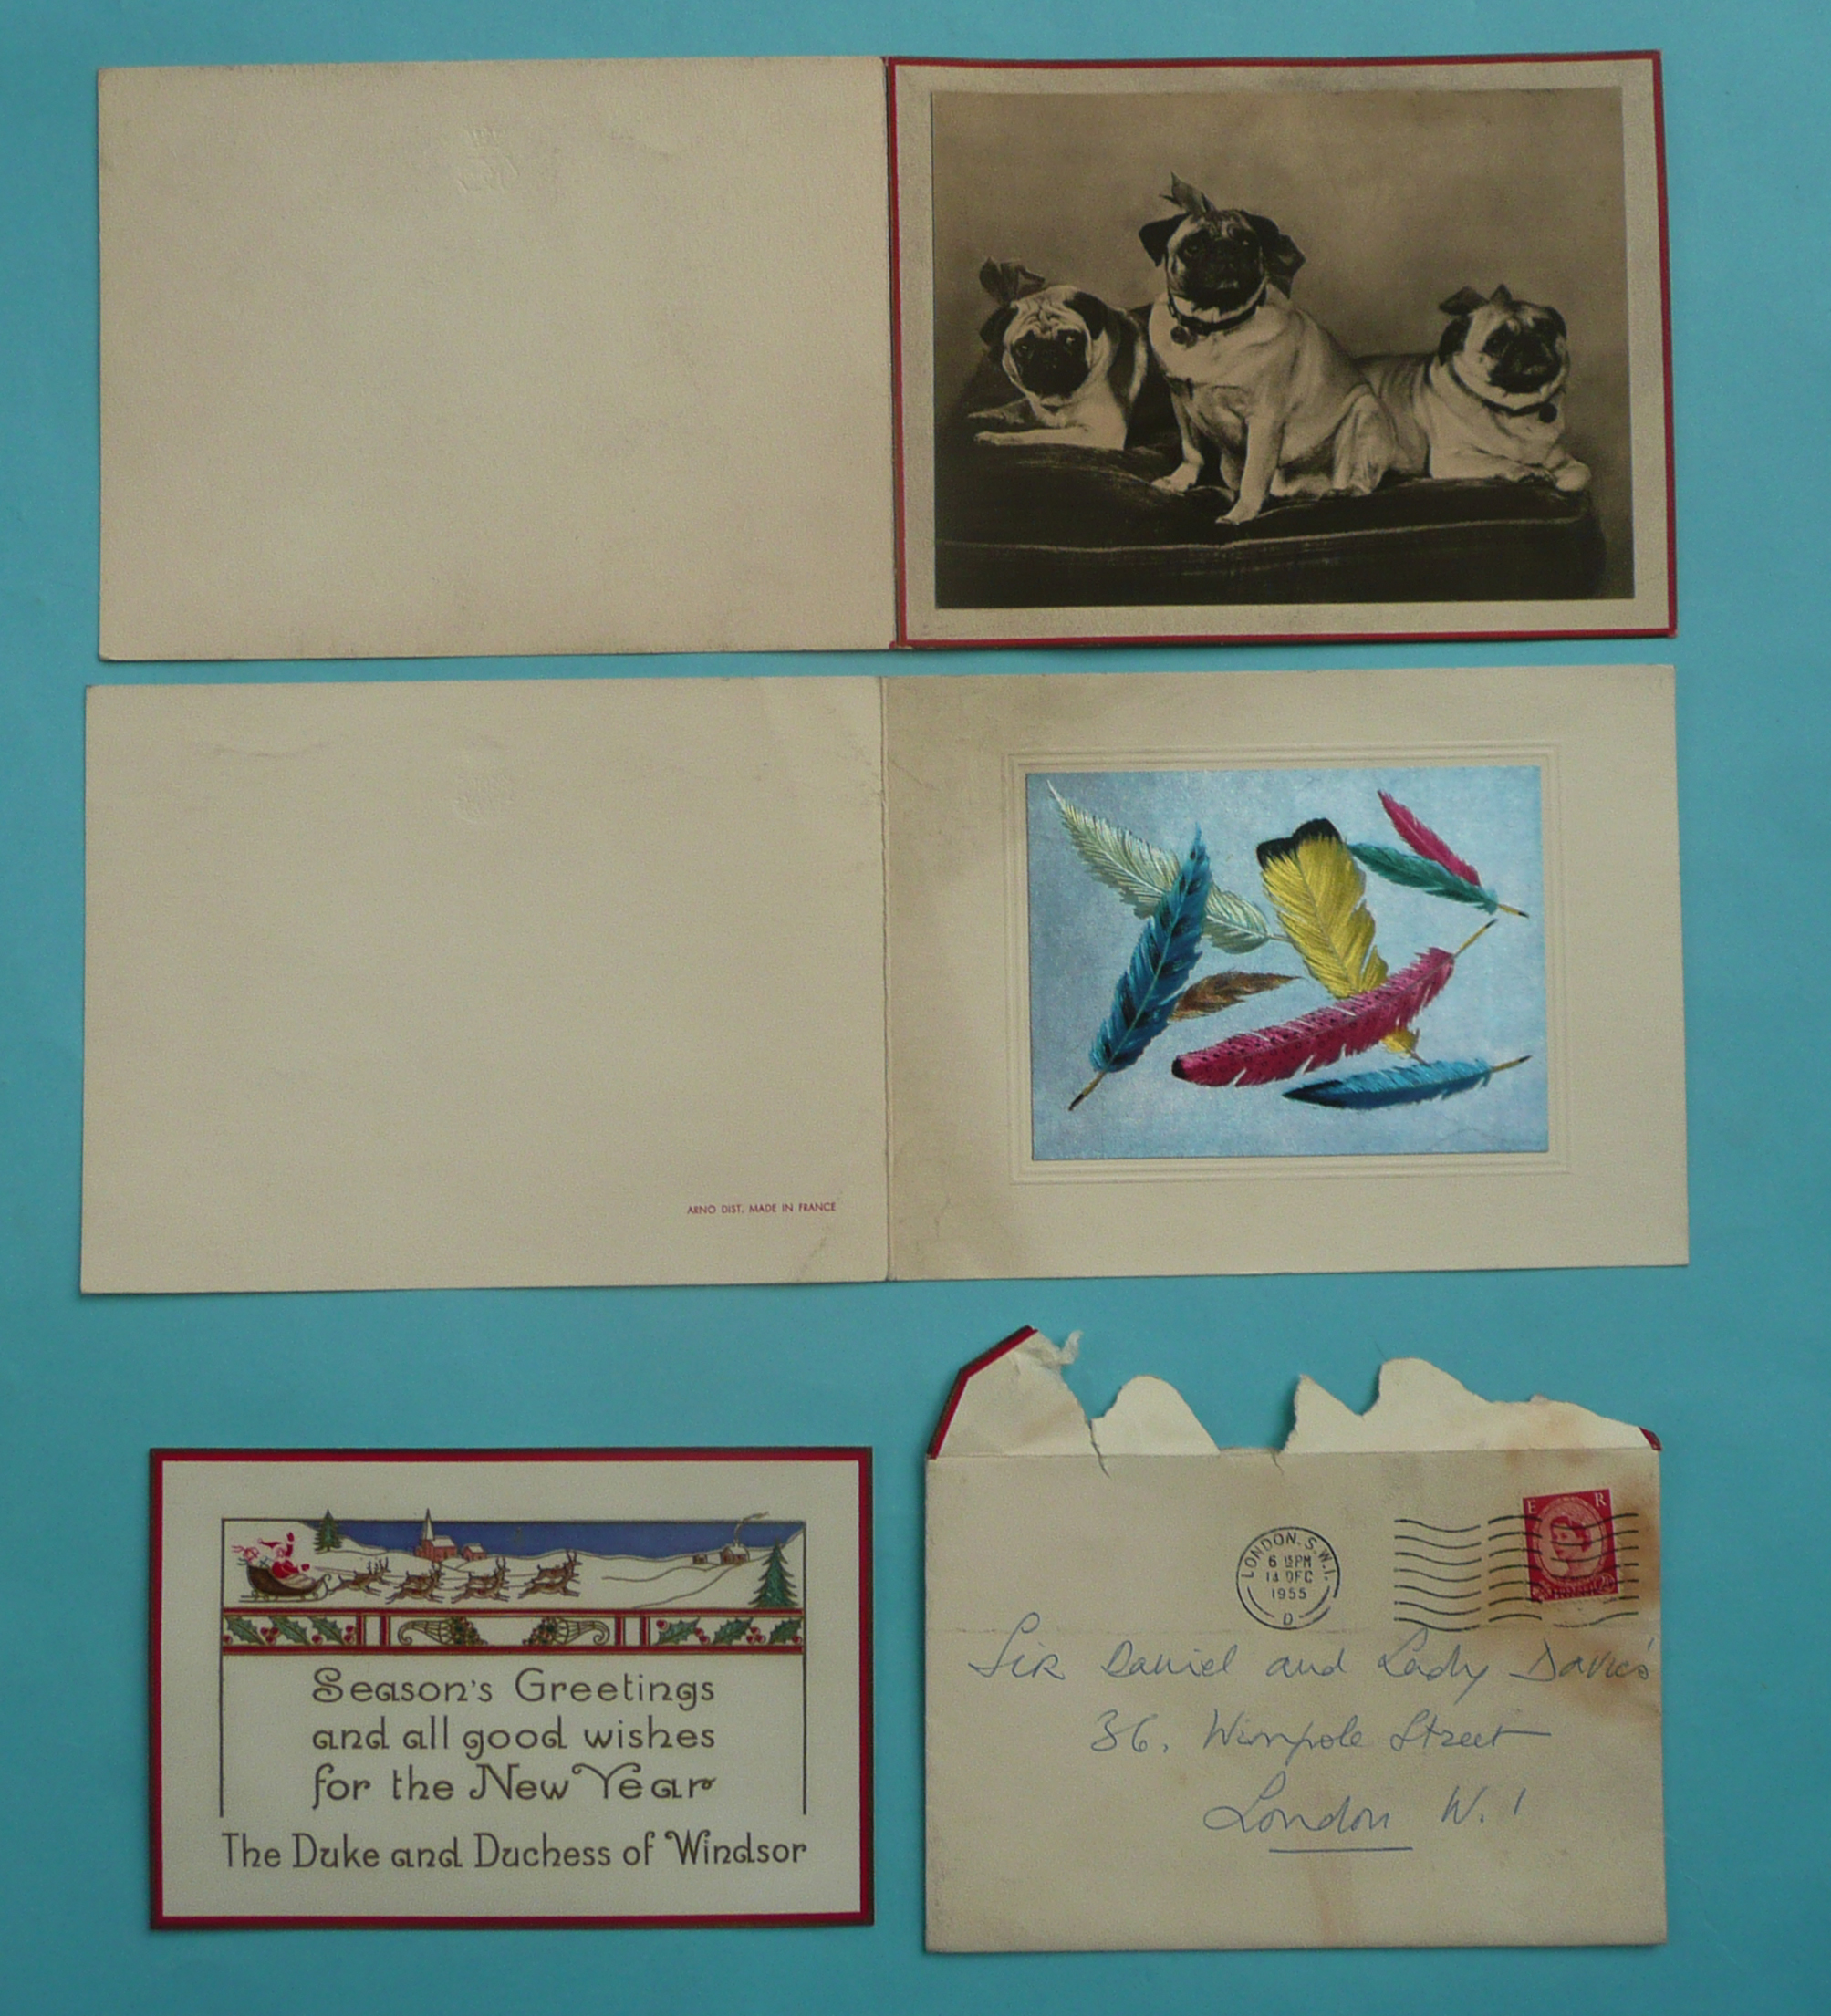 Lot 144 - Duke and Duchess of Windsor: a Christmas card together with the postal envelope franked 14 Dec